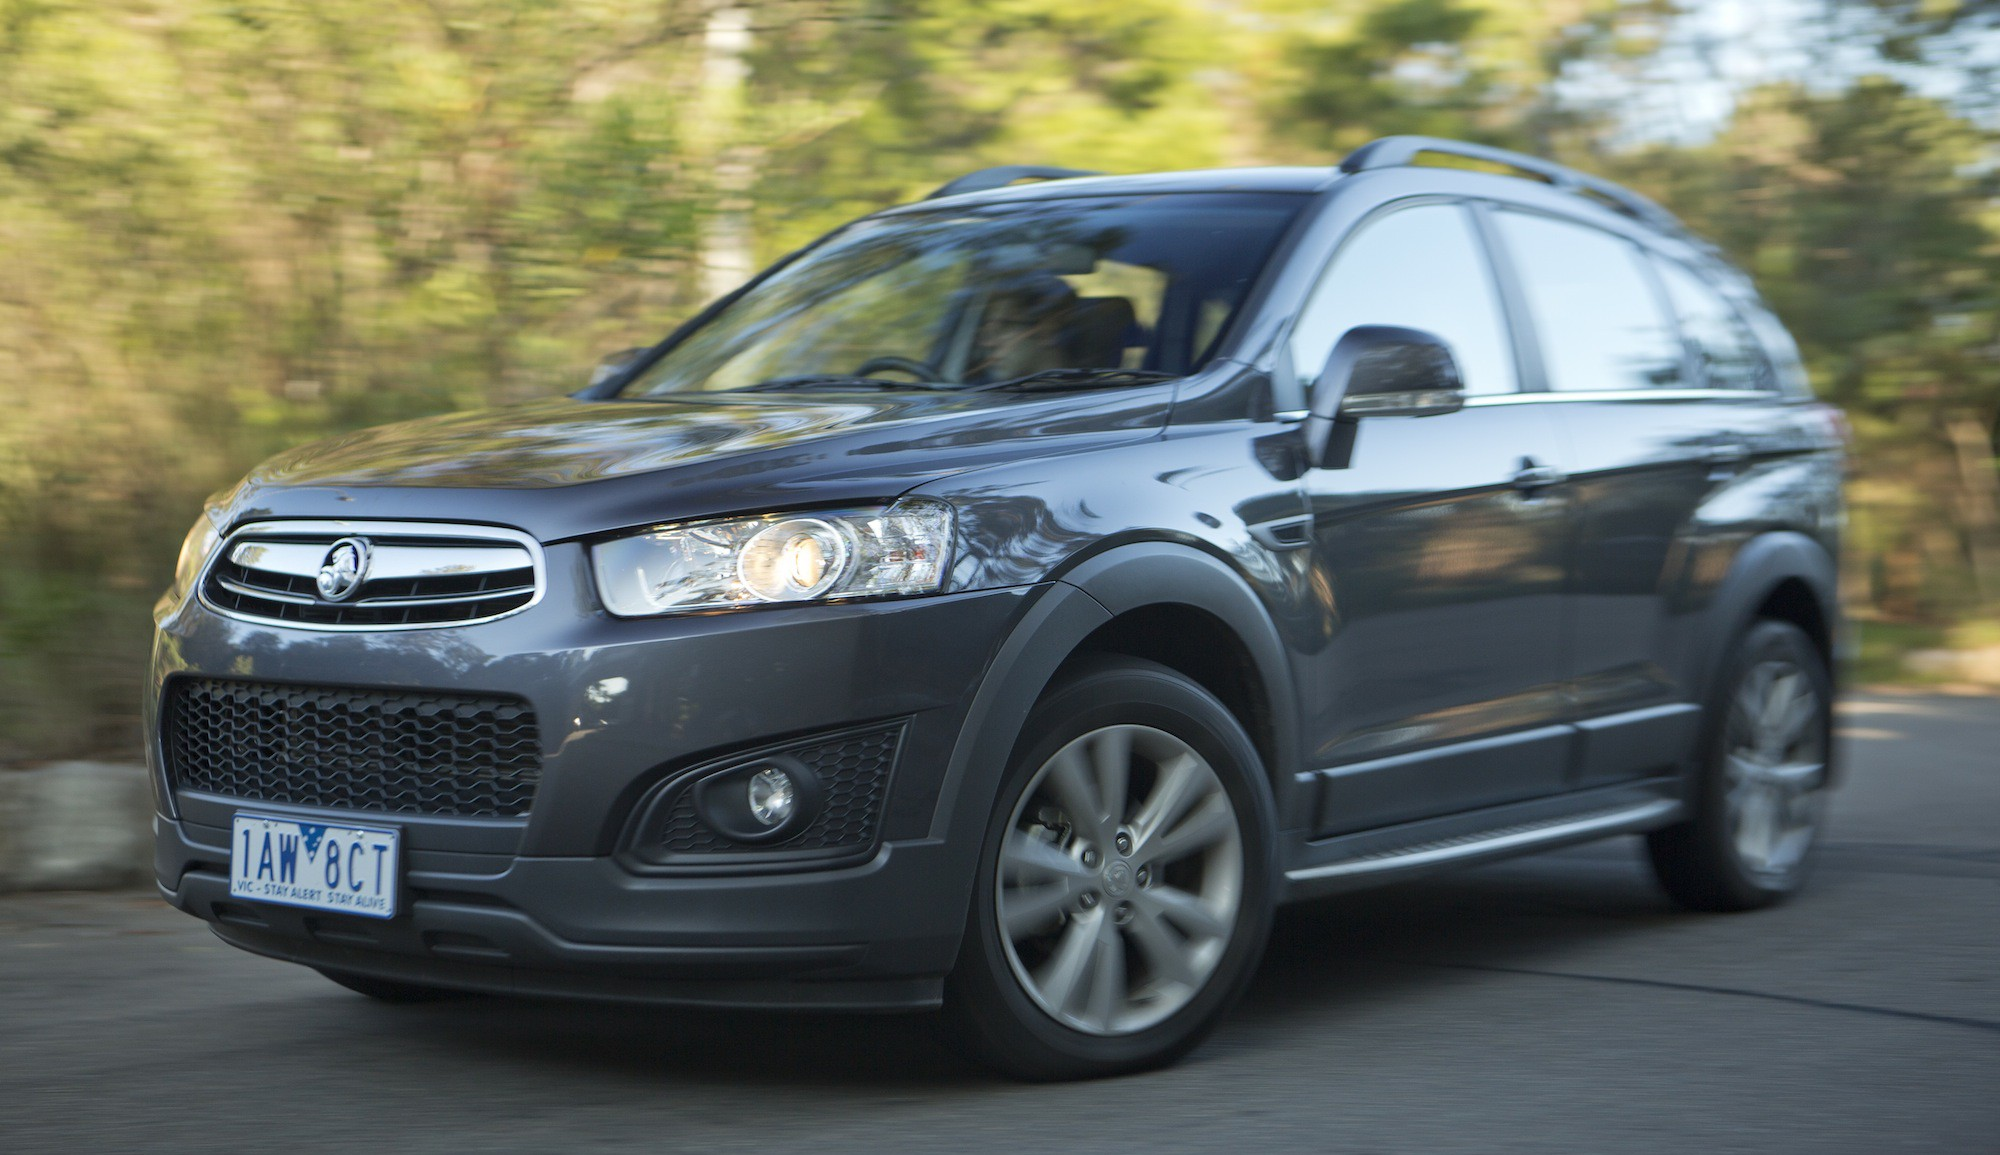 Holden captiva photo - 6